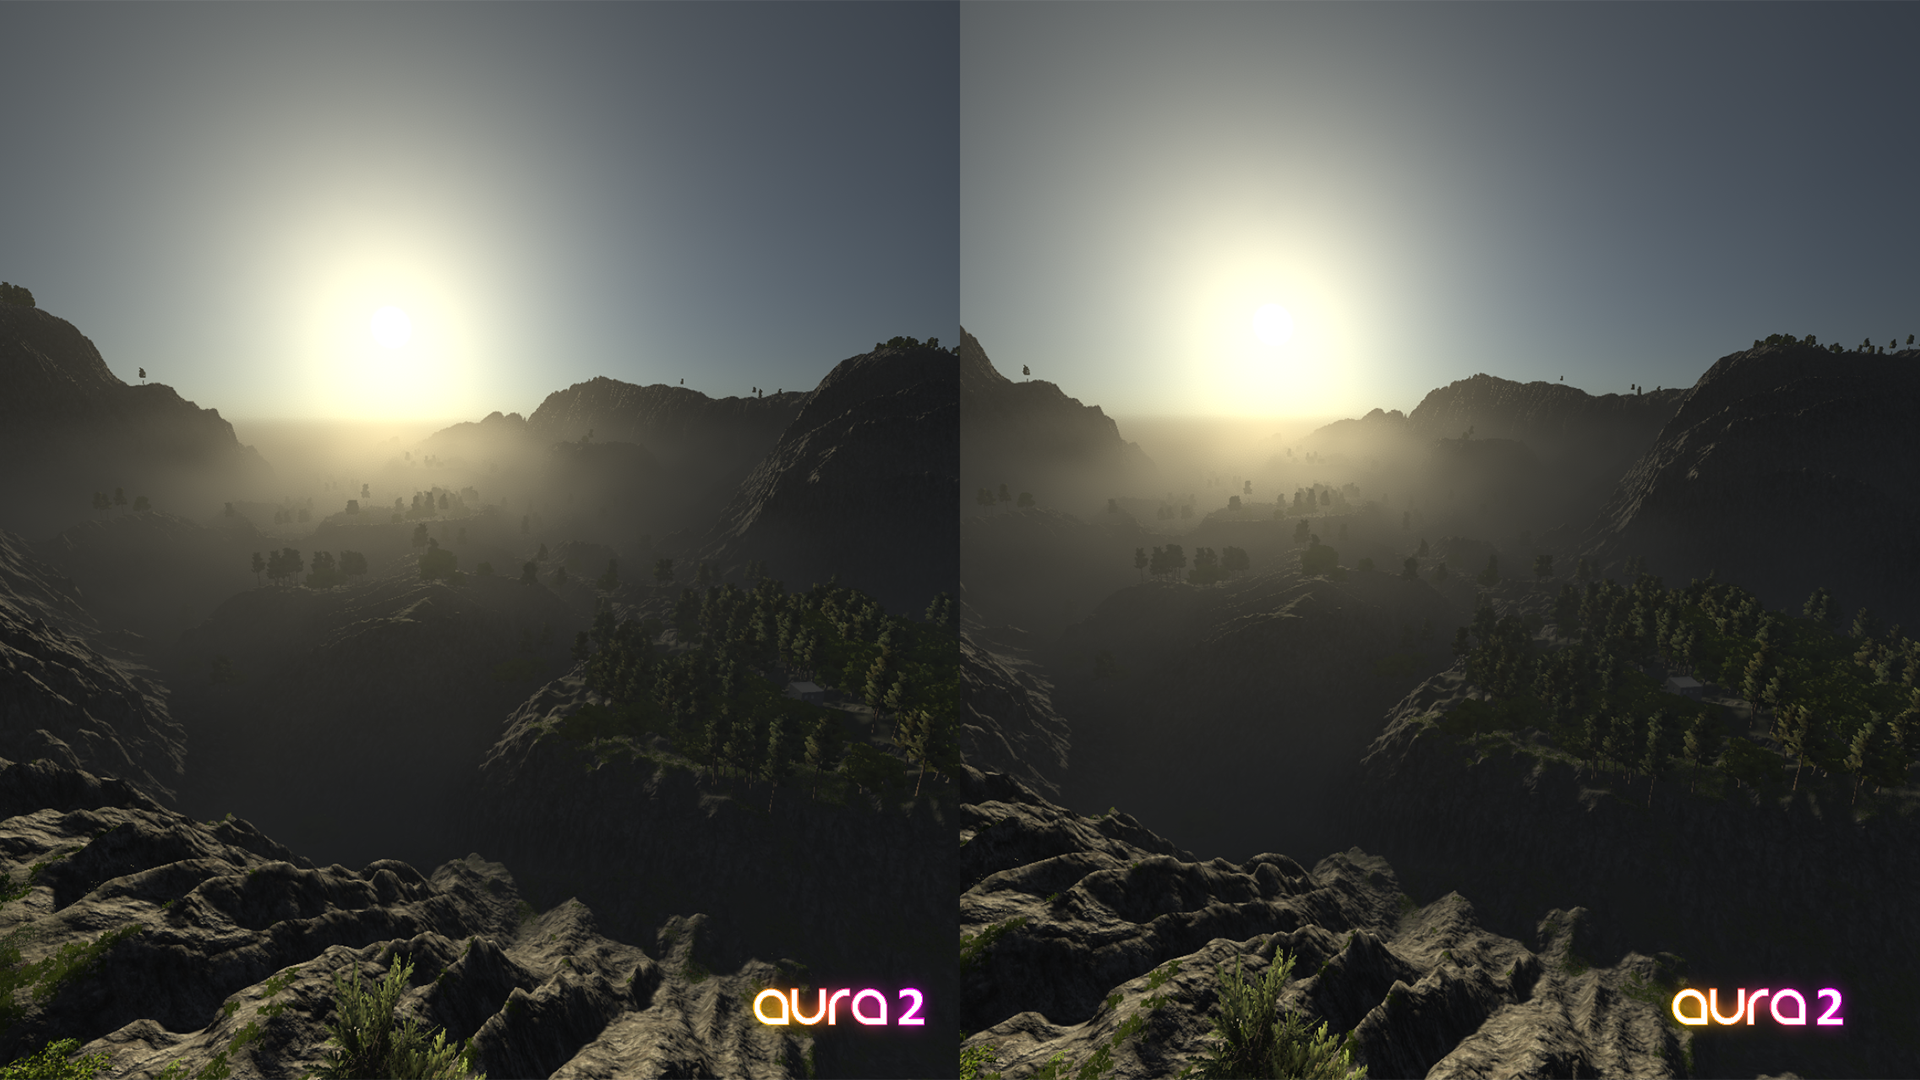 Aura2-StereoRenderingPreview.png